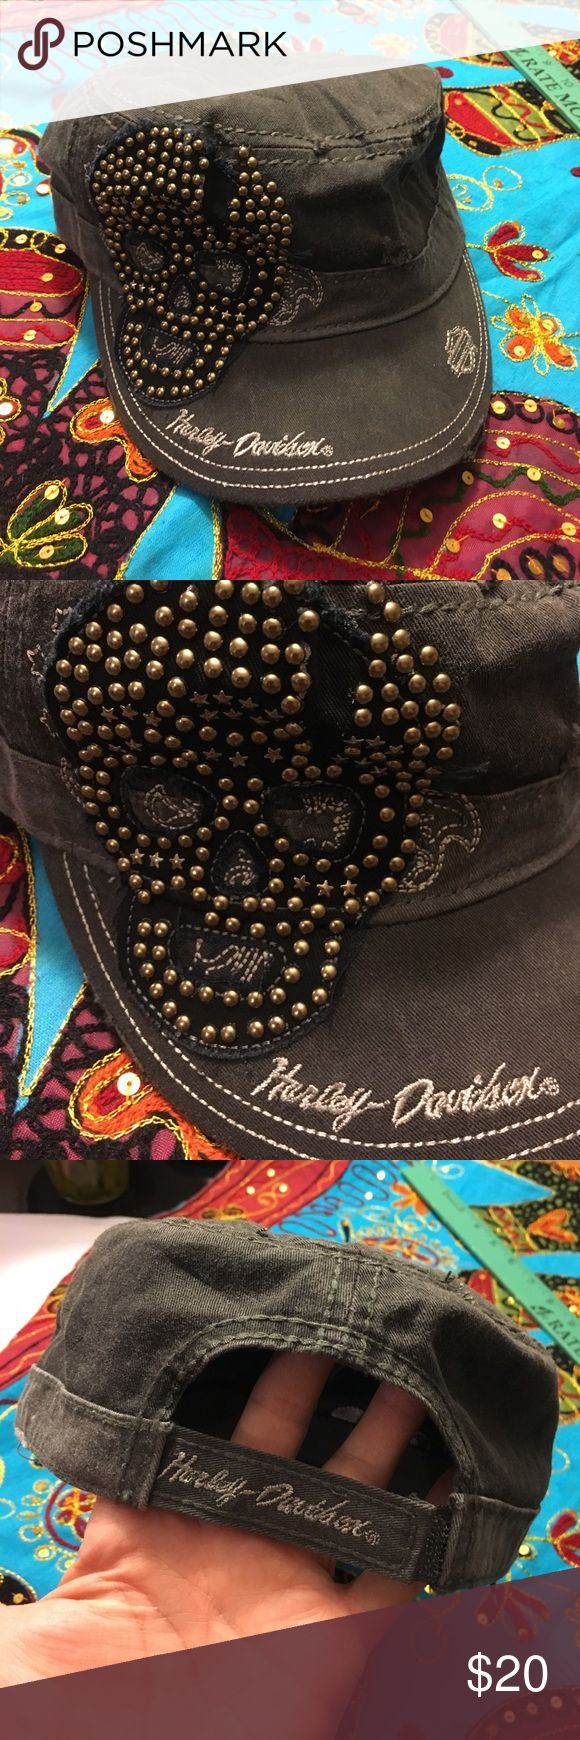 Harley Davidson Hat. New. Gray Harley Davidson hat with gold tone rivers accenting a skull. Great attitude!Adjustable strap in back. New without tags. Has NOT been worn. Harley-Davidson Accessories Hats